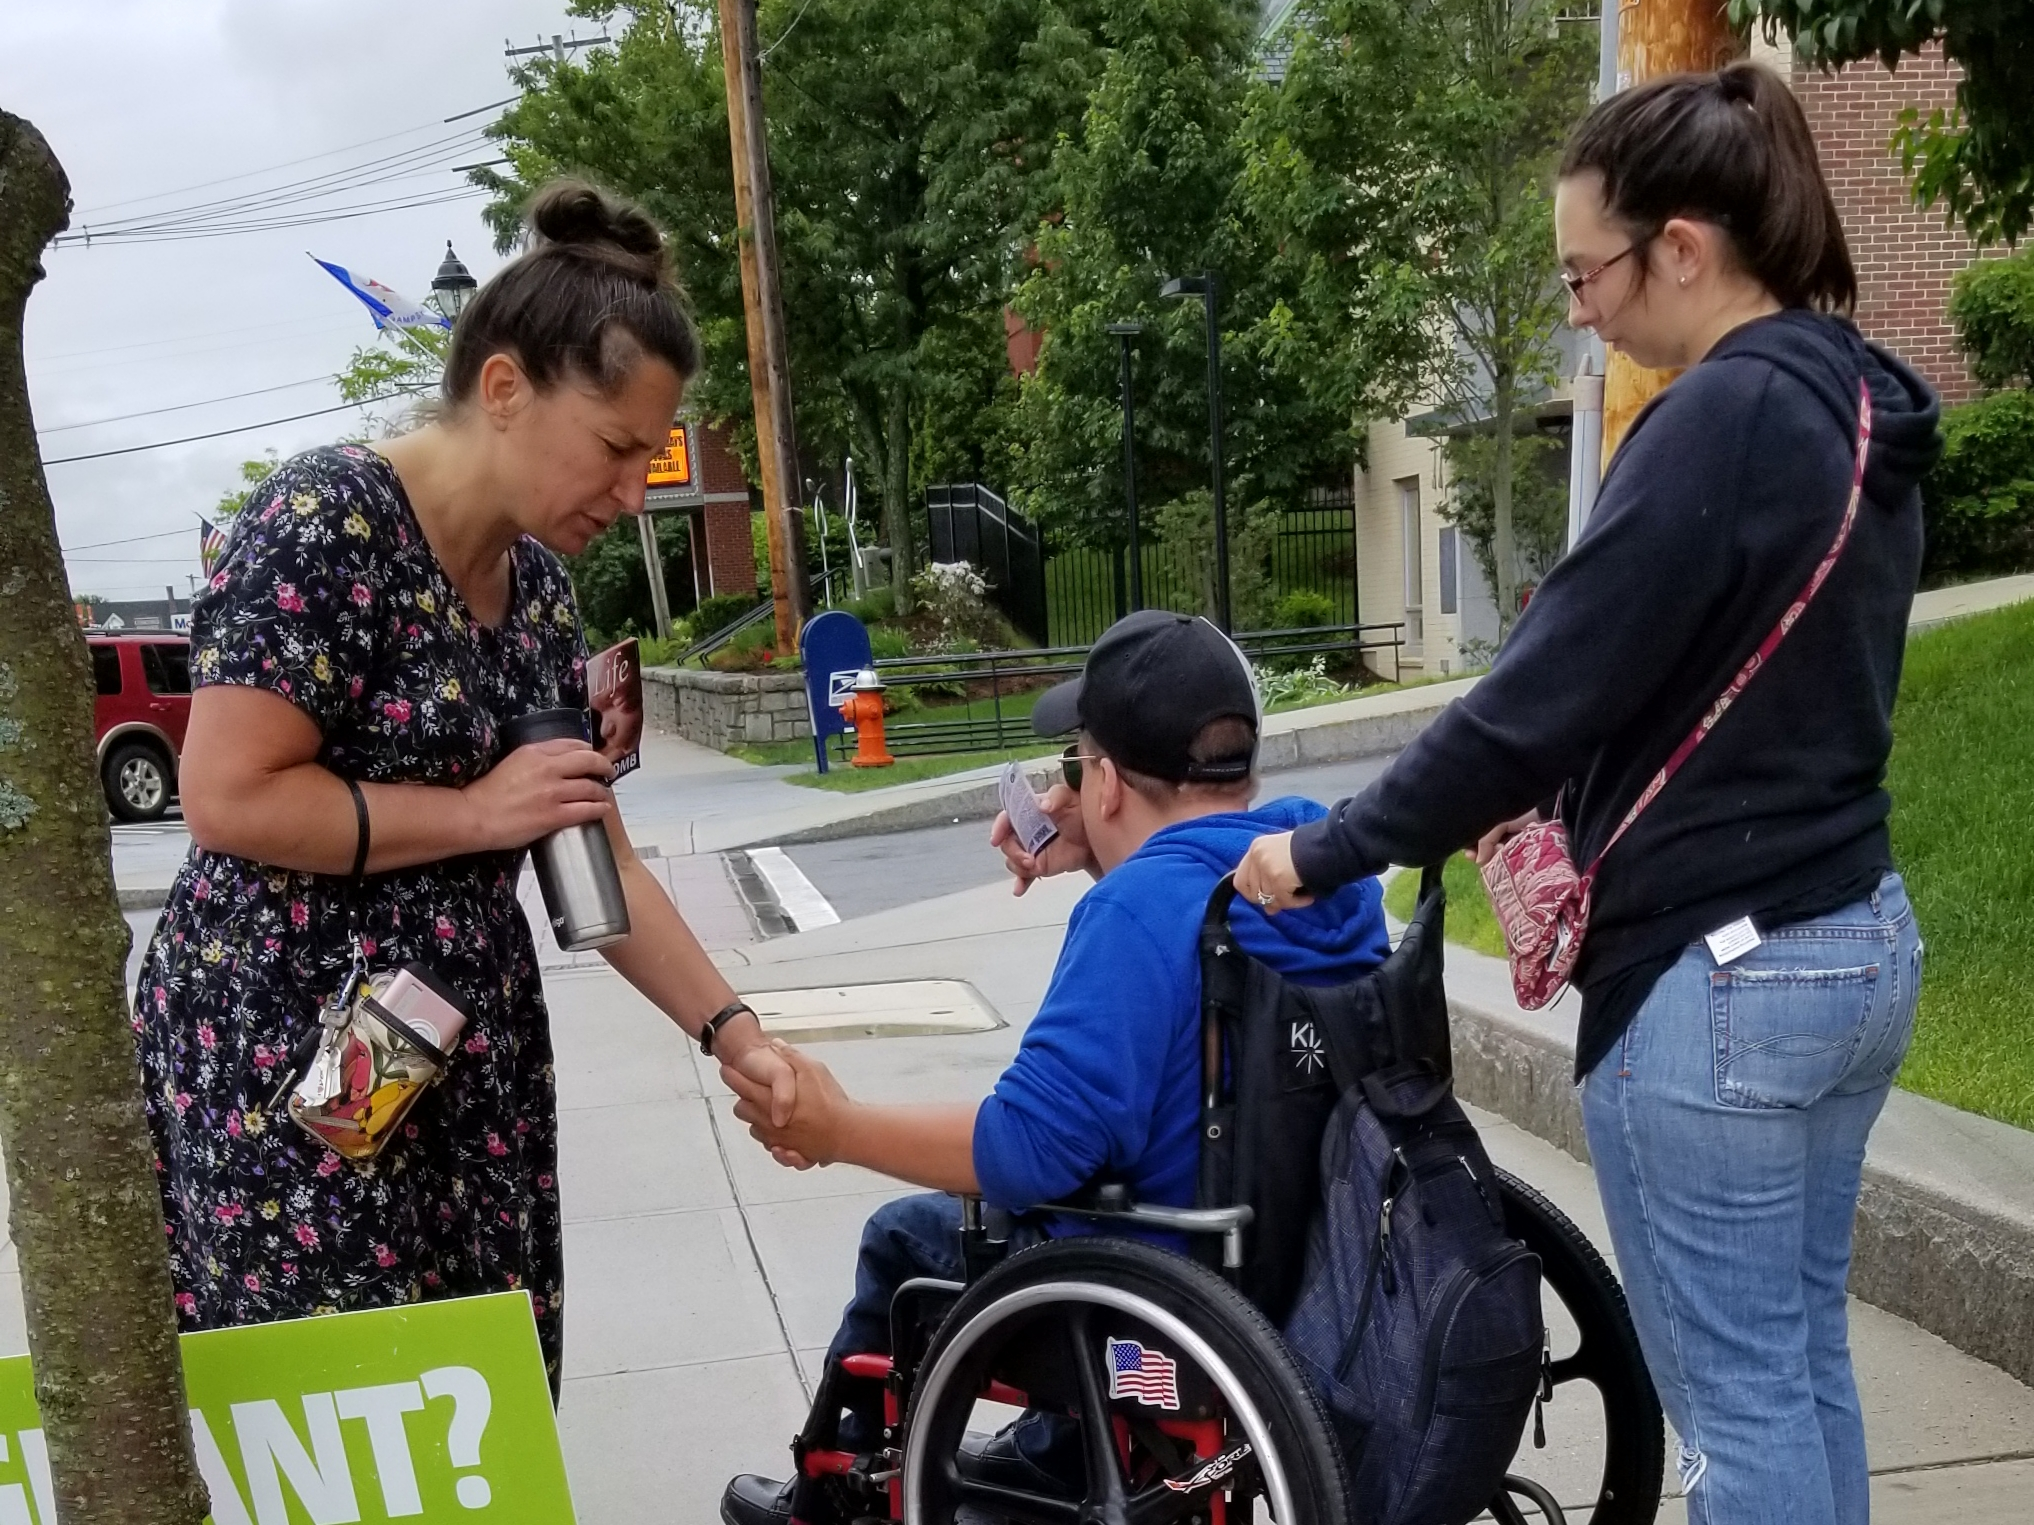 "This is Wayne, a disabled man with a slight speech impediment and in a wheelchair. He was so glad we were outside the abortion clinic standing for life. He gave testimony of his faith in Jesus Christ!  As he was leaving, he asked if Christine would pray for him. In this photo she's doing just that.  After Wayne left, I turned to the five abortion center employees and said to them, ""So many of the babies you destroy have their lives ended because they're going to be disabled. They might need a wheelchair. They might need a caregiver. Instead you 'fix the problem' by violently murdering them.""  I told them, ""You saw Wayne. He's happy. He's glad to be alive. He's human and he has dignity and you kill tons of Waynes all the time. I hope you got a good look at this remarkable man, because you kill so many just like him. It's barbaric and you're using violence instead of caring for those who need help. How can you live with yourselves for killing those like Wayne? Why is his life less valuable than others?""  They wouldn't answer me. Honestly, they can't. Abortion is using violence to get rid of someone to try to solve a problem.  Please understand that I don't normally speak so firmly. I never speak so firmly to the Moms. But these weren't Moms. These were abortion clinic workers, so an extra bit of firmness was appropriate in this case.  Why is Wayne, with a disability, less human than others? He isn't! He's created in God's image and has worth whether he can walk or not.  And the abortion workers have worth too, so please join me in praying that God will use Wayne to open their consciences to get them to repent, trust Jesus, and leave their evil work."